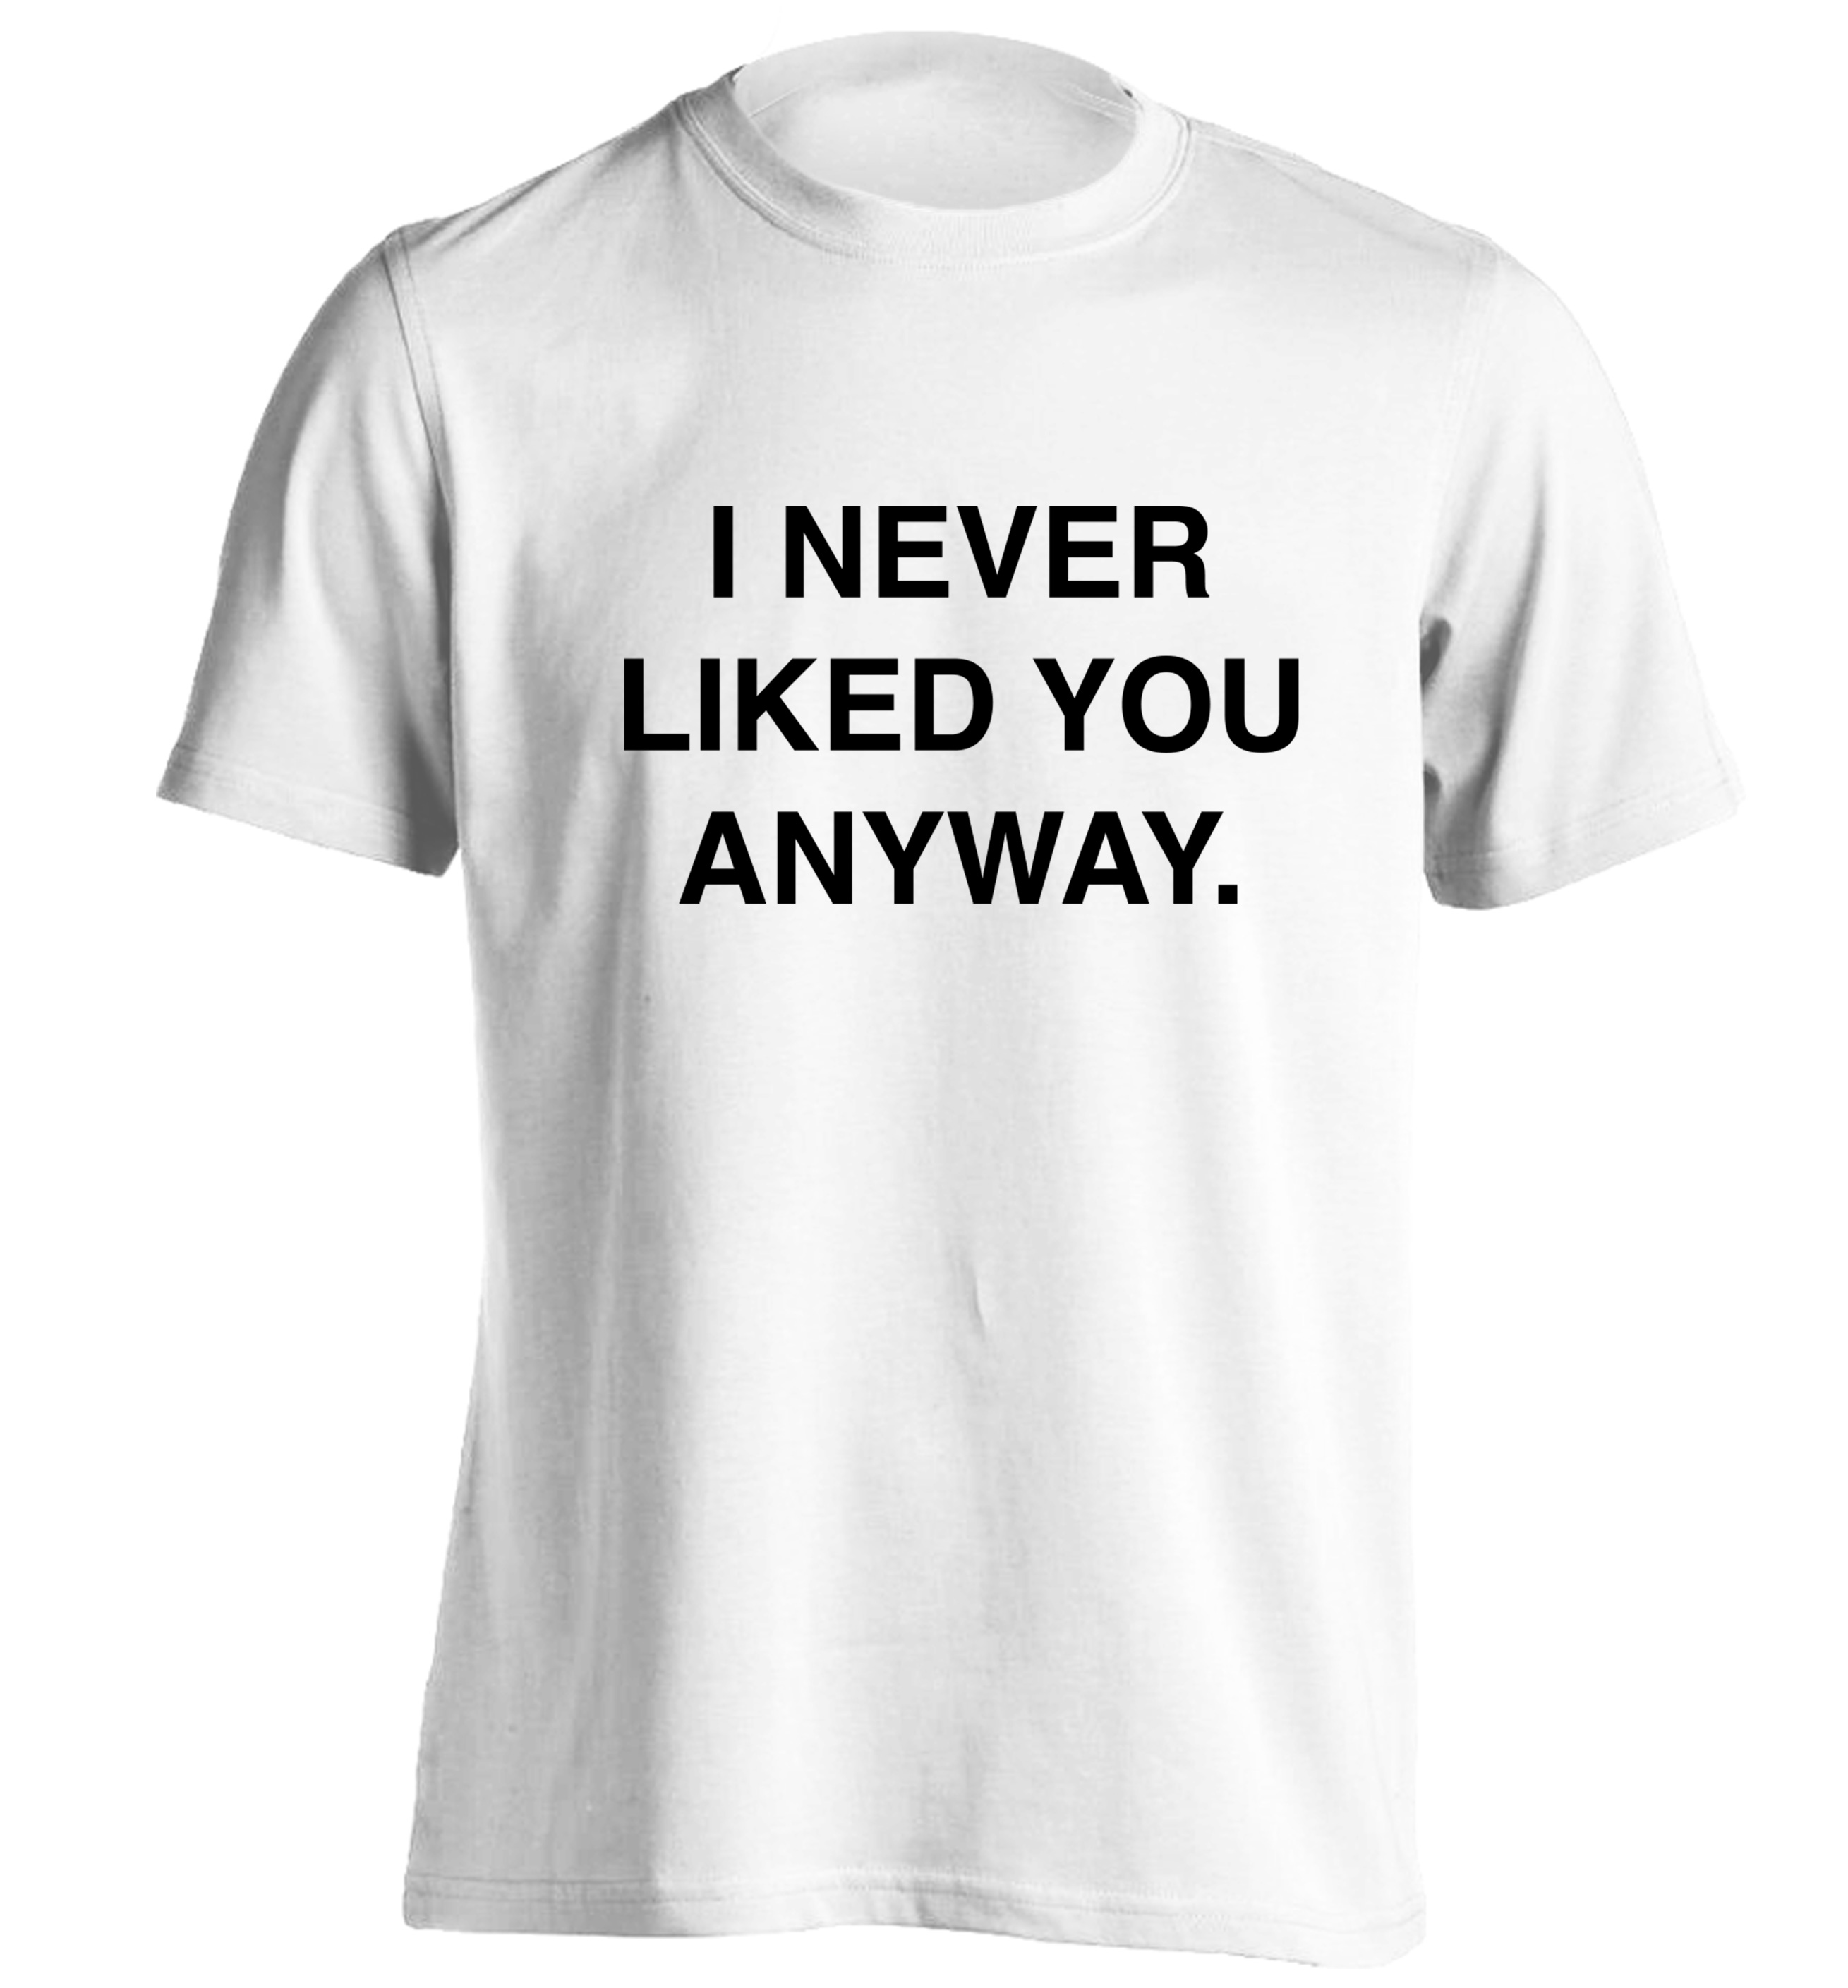 I Never Liked You Anyway Tshirt Hipster Tumblr Instagram Slogan Text